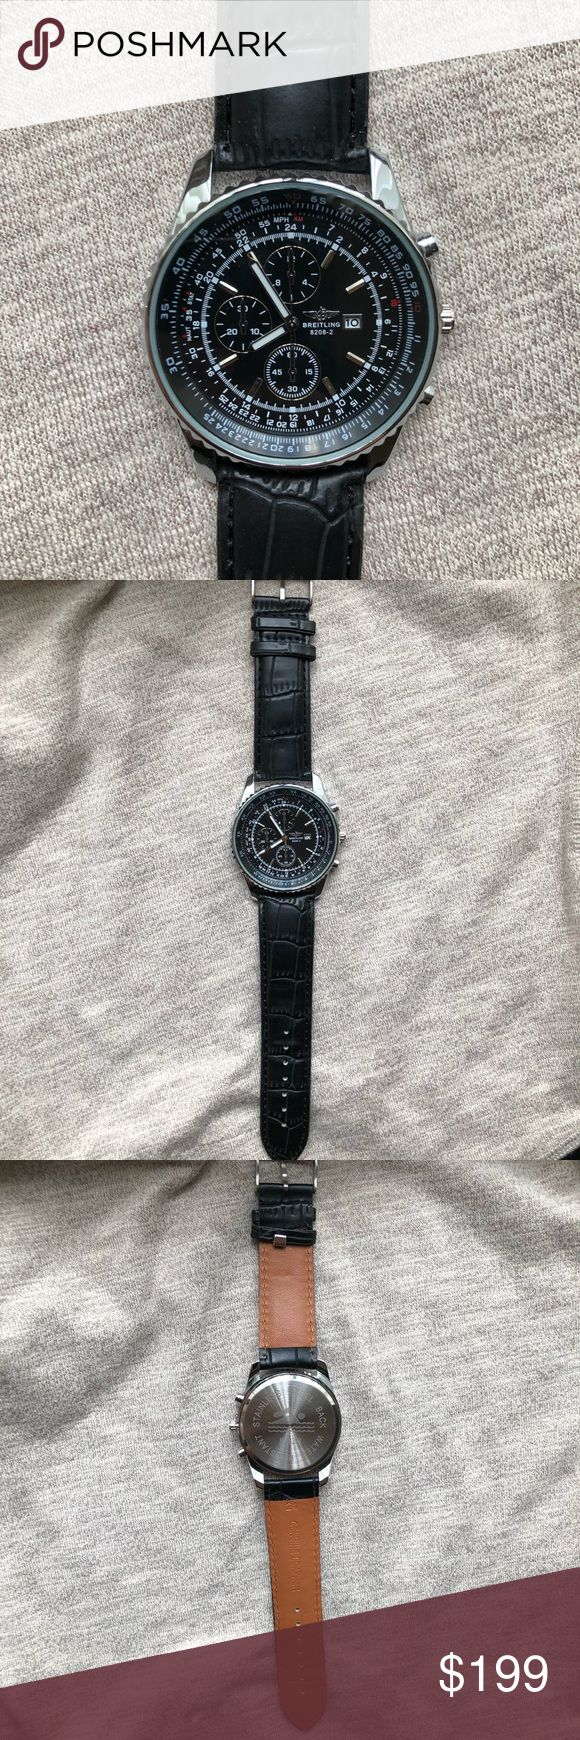 New Breitling Navimeter Men's Bentley Watch Brand New Breitling Navimeter (Bentley Watch)  Exactly like original, 1:1 Scale exact   Quartz Movement   Same Day Shipping!🚀🚀🚀 Breitling Accessories Watches